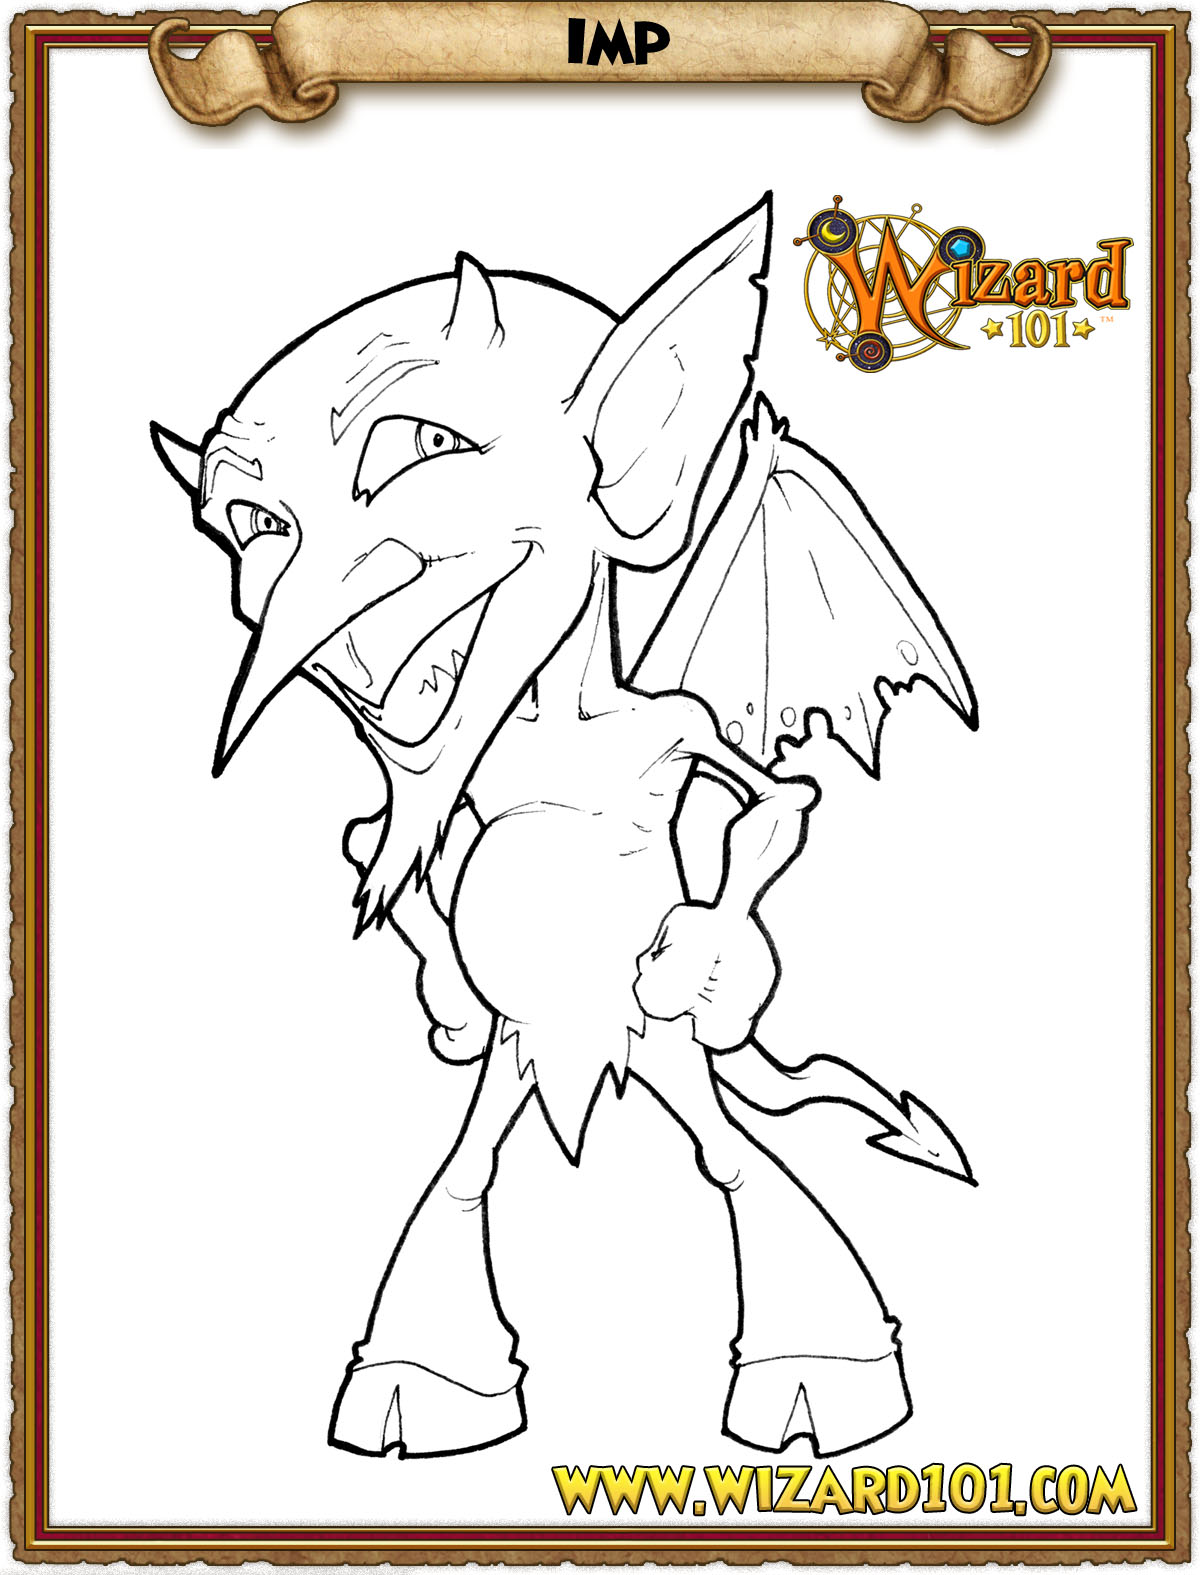 ravenwood bulletin wizard101 free online game rh wizard101 com Wizard101 Fire Cat Coloring Pages Wizard101 Death Coloring Pages